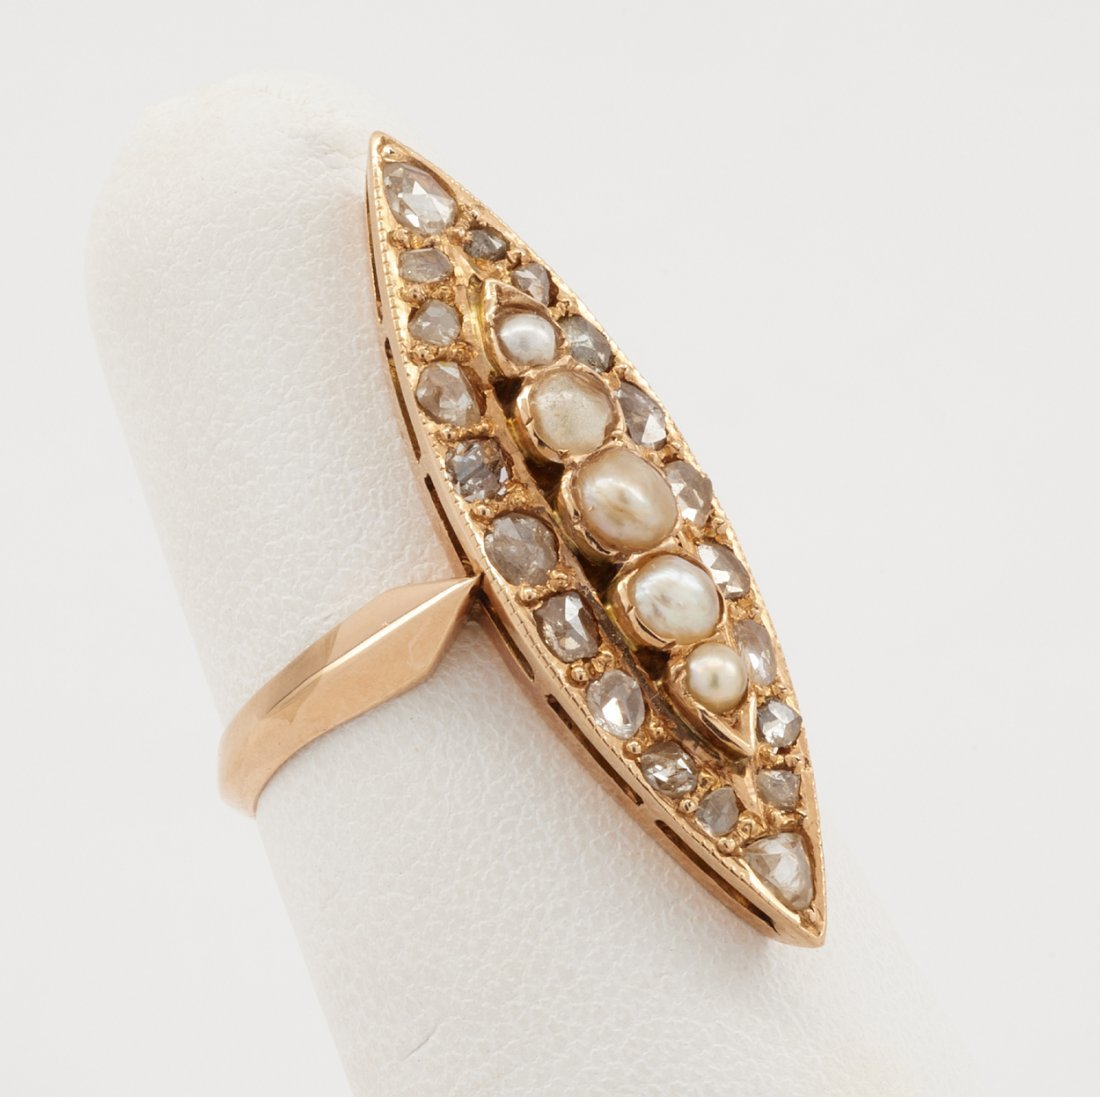 18k Rose gold, pearl & diamond navette ring